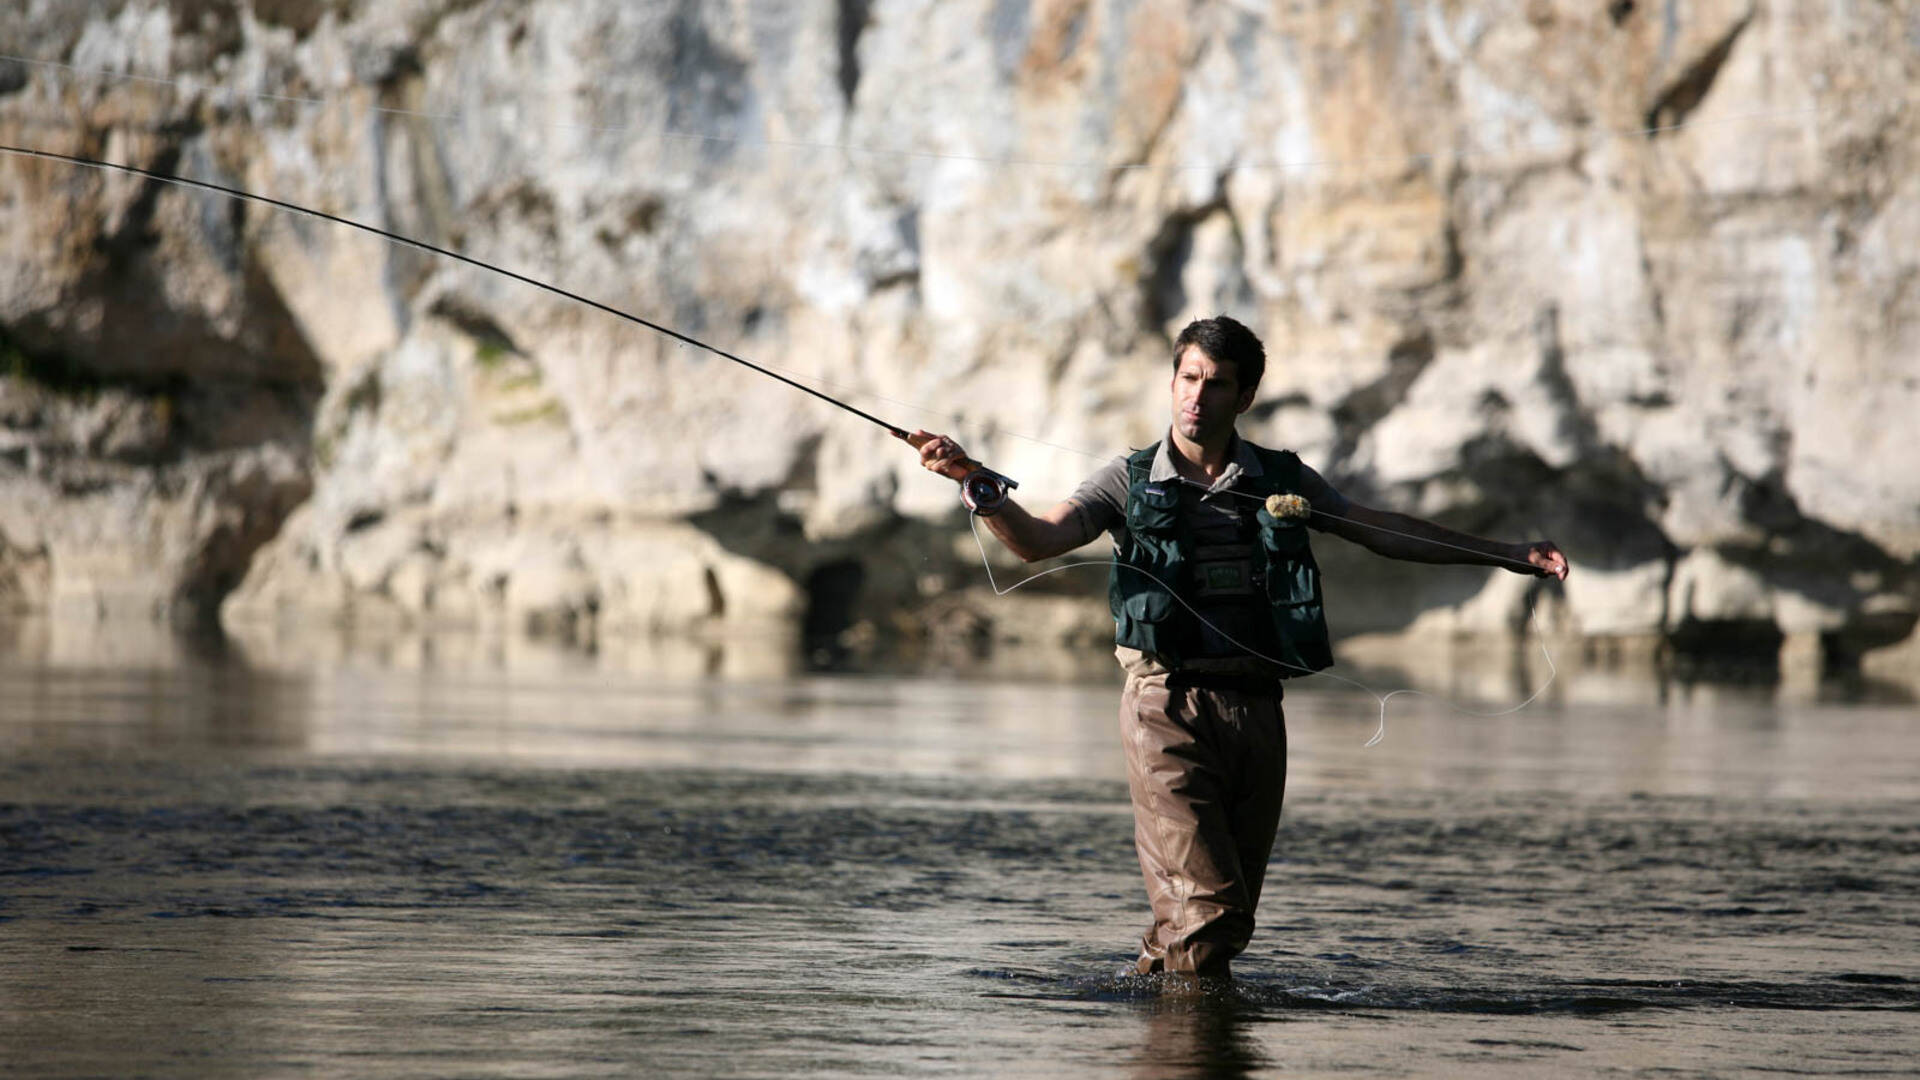 Fly-fishing in the Dordogne